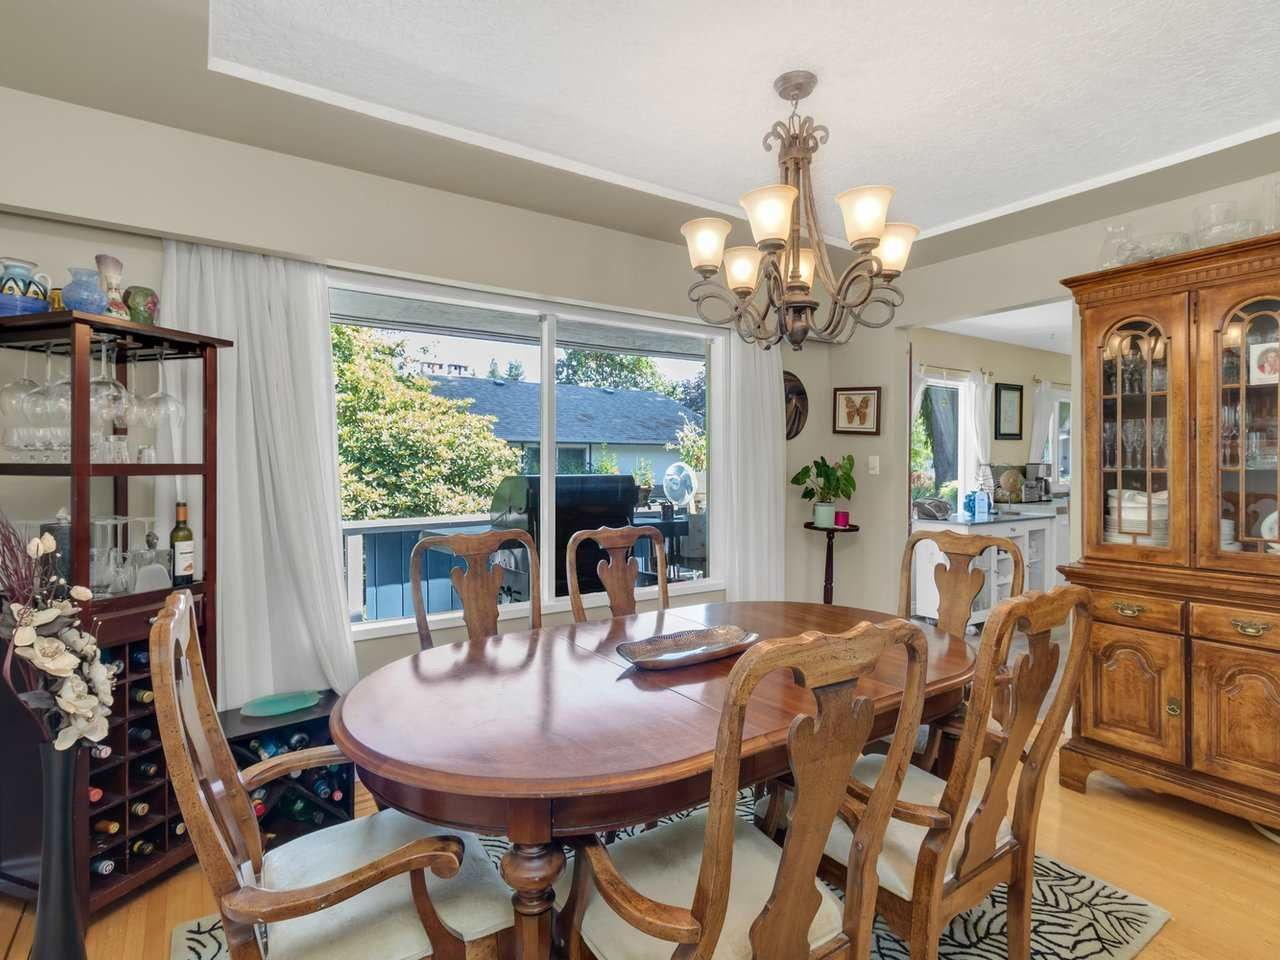 Photo 4: Photos: 943 GATENSBURY Street in Coquitlam: Harbour Chines House for sale : MLS®# R2499202